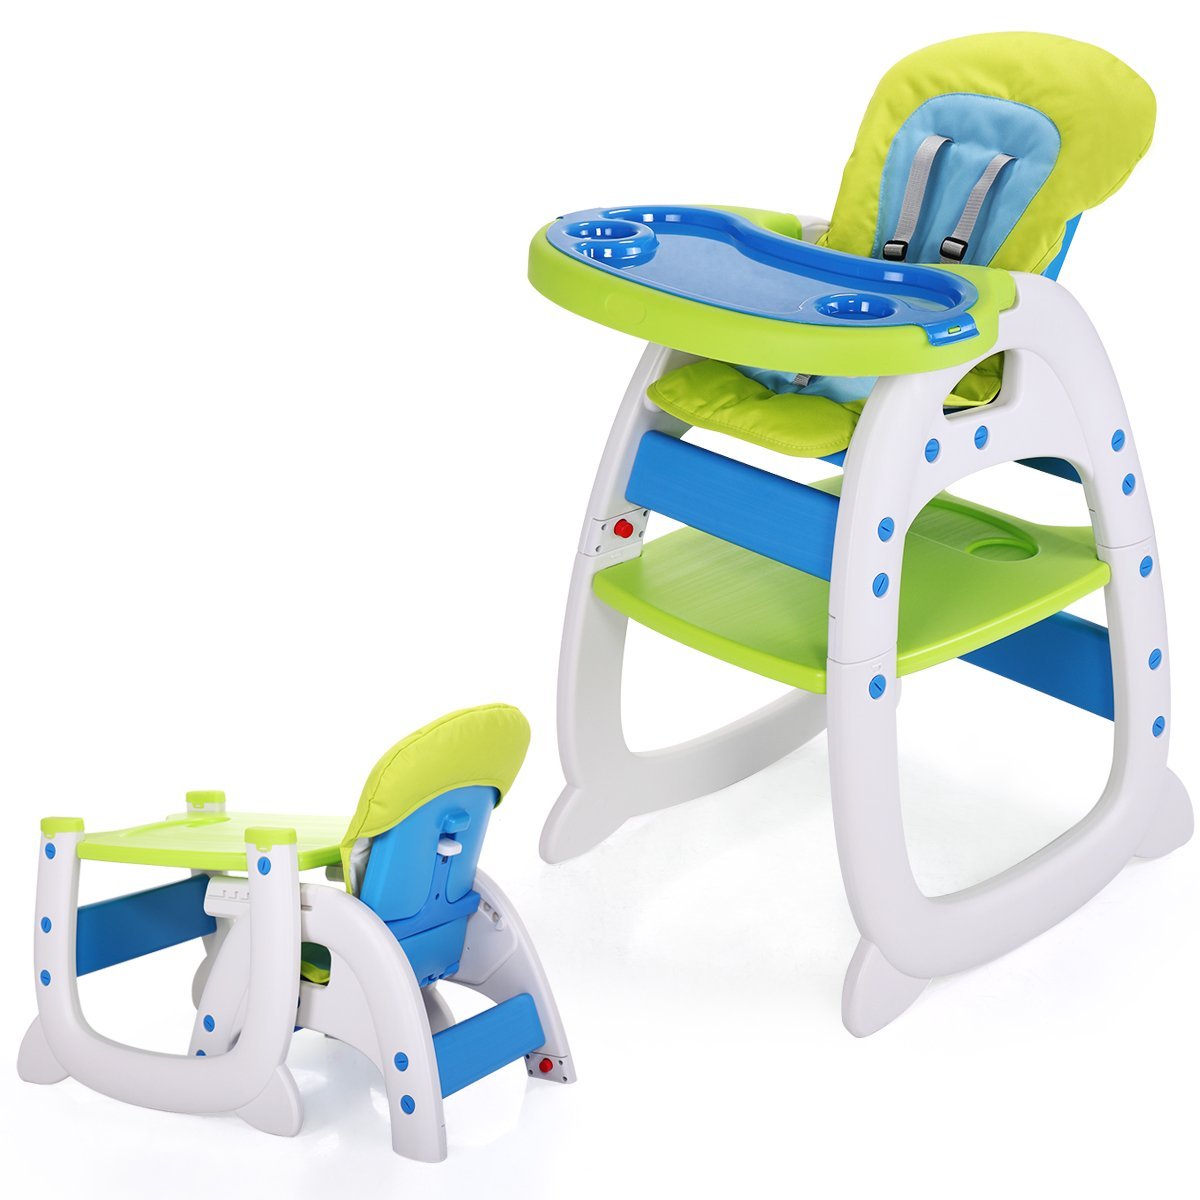 Sandinrayli 3 in 1 Toddler Highchairs Booster Seats Convertible High Chair w/Feeding Tray Blue-Green by Sandinrayli